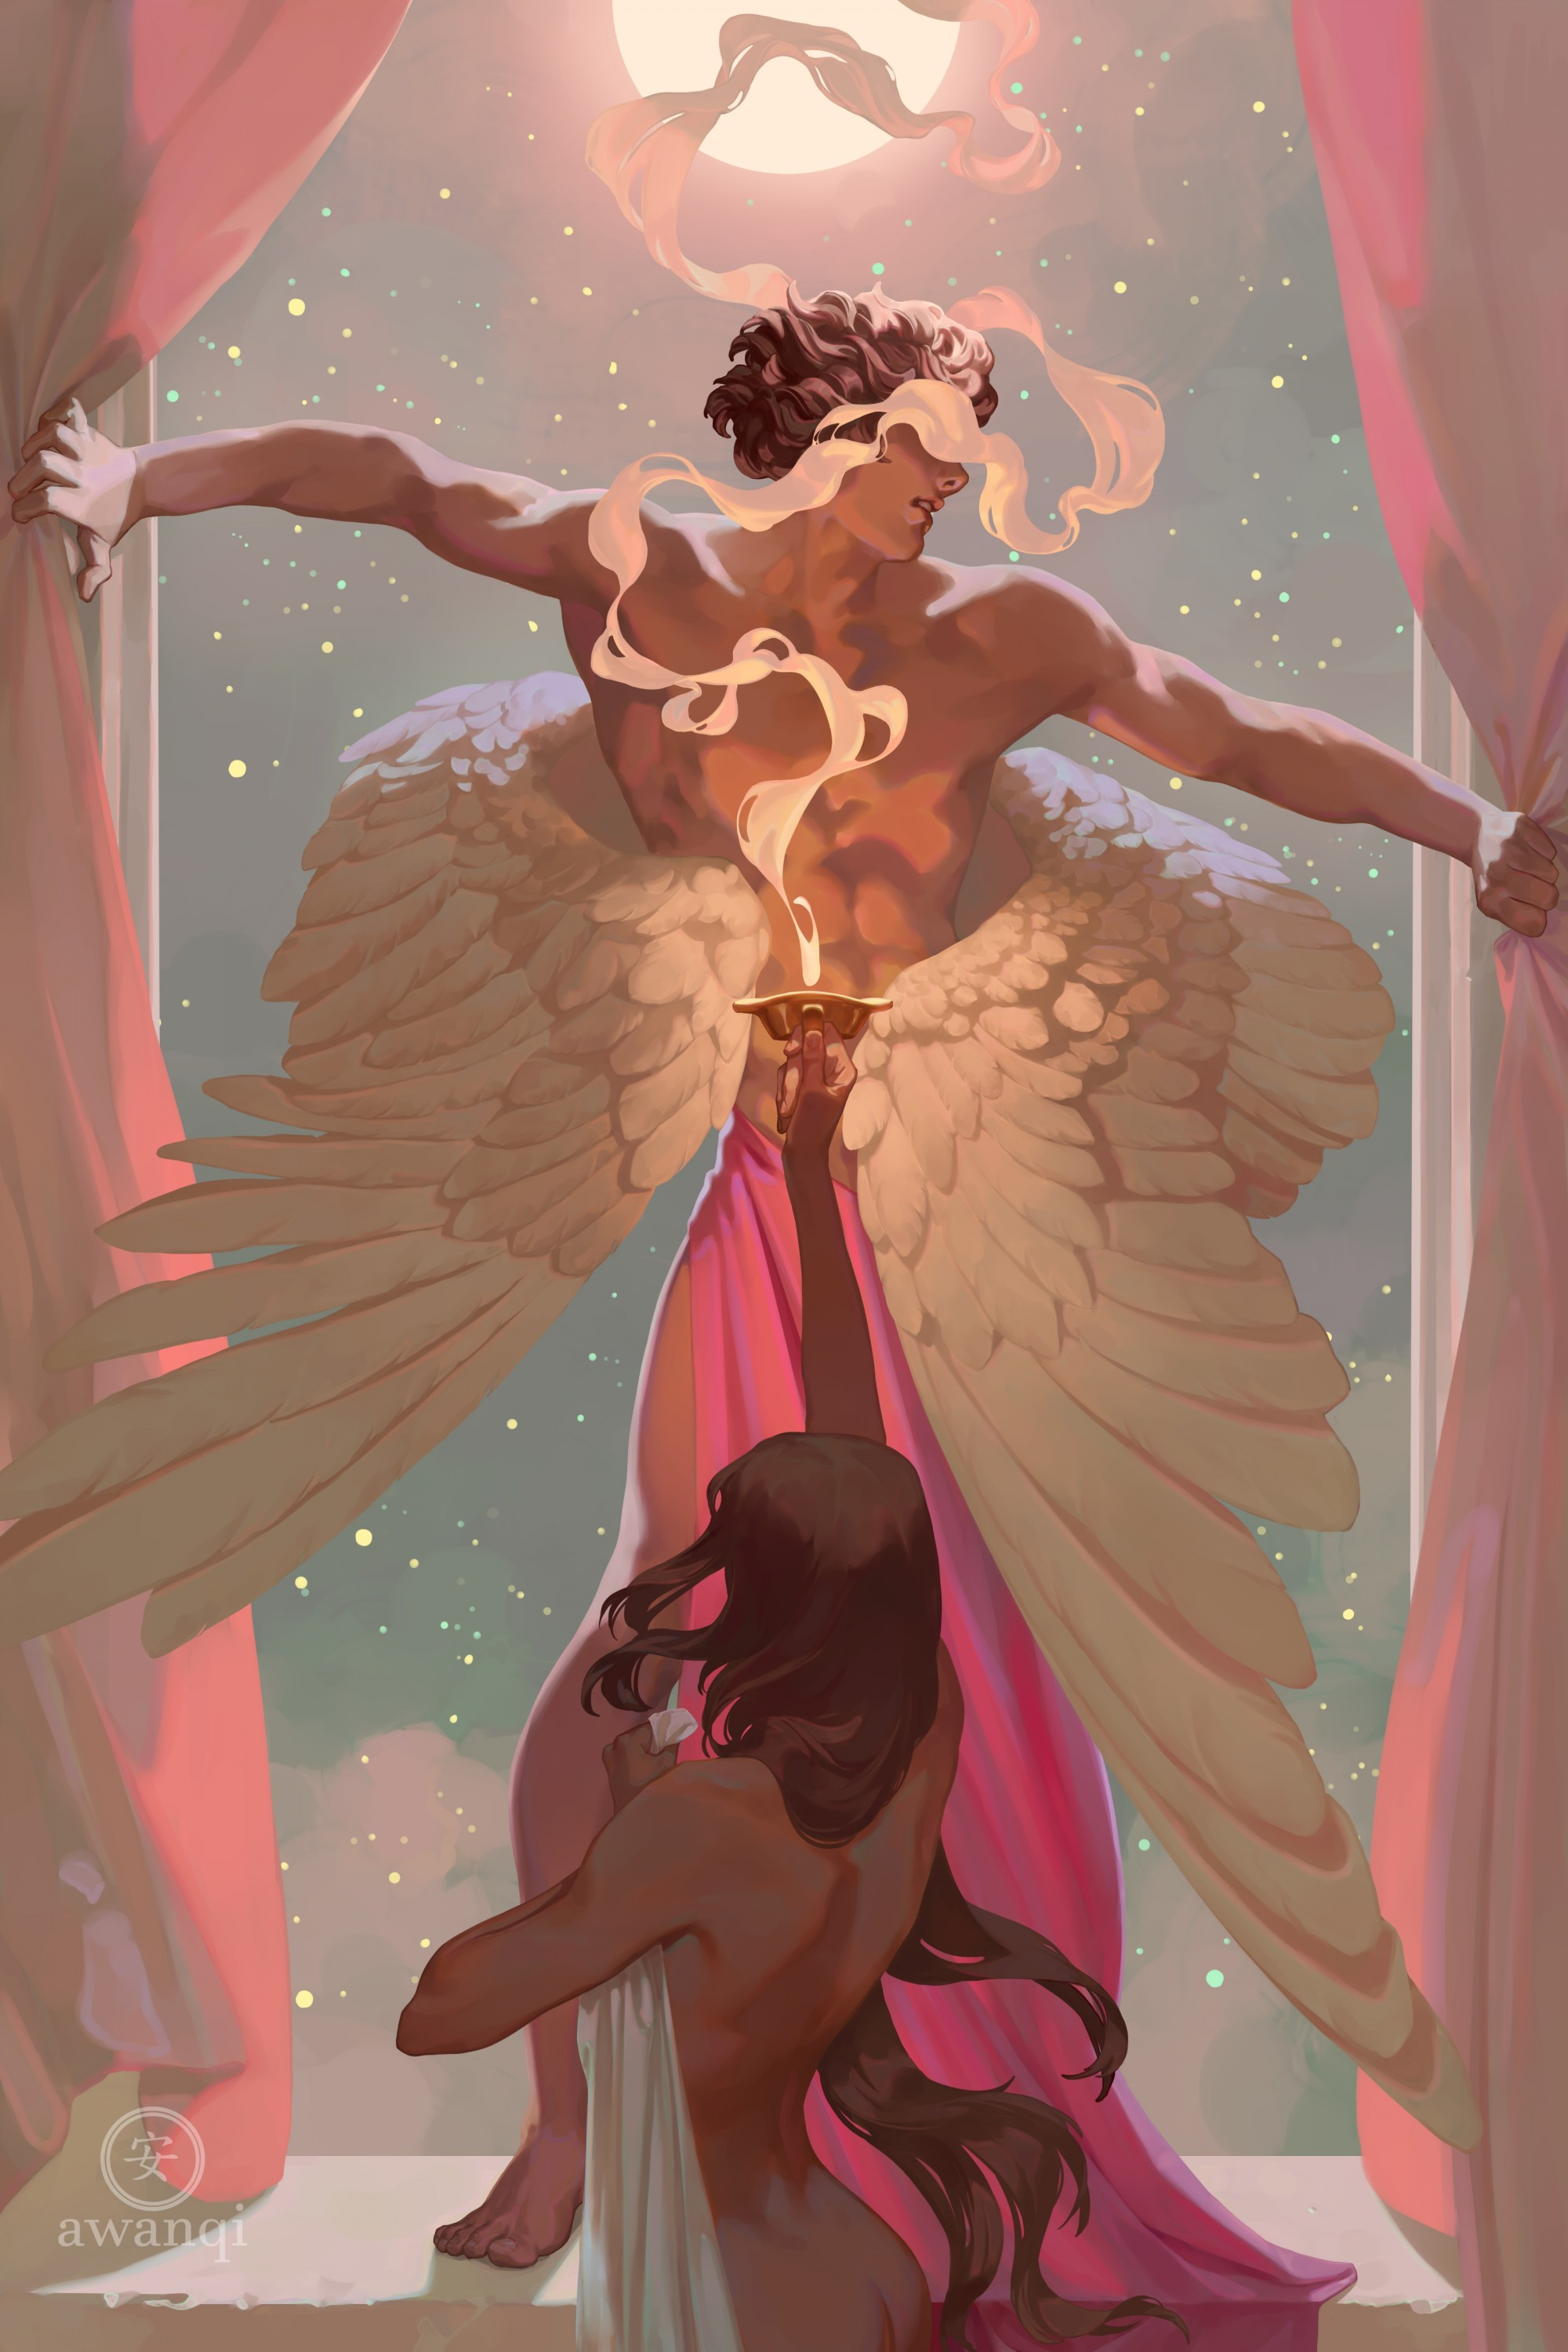 A young woman holds a smokey candle up to a winged man